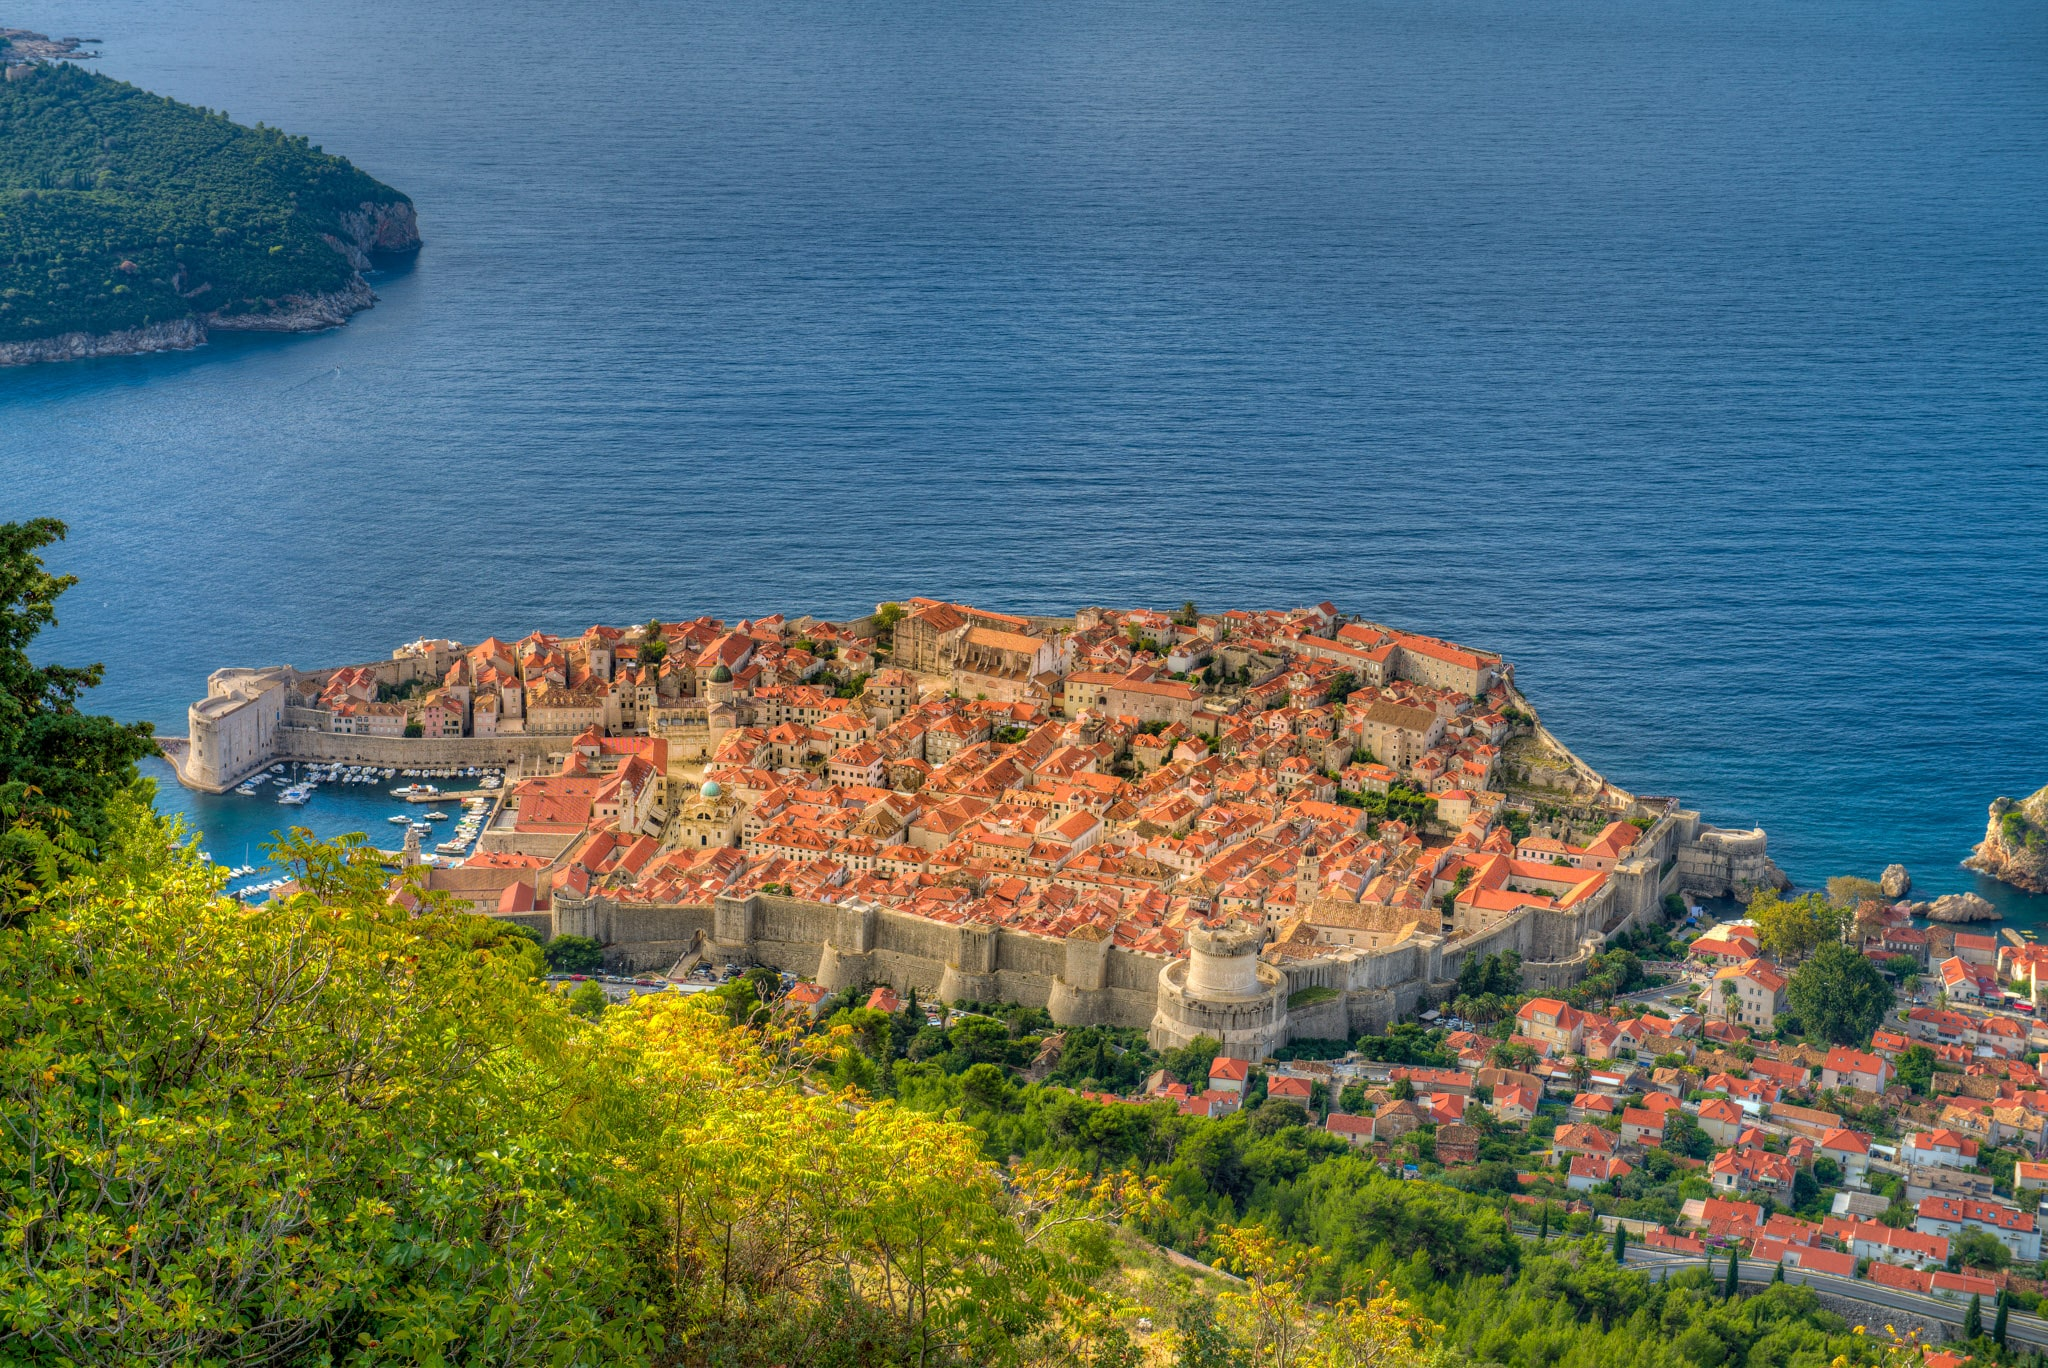 A view of Dubrovnik Old Town and its surrounding walls taken from Mount Srdj in Croatia.